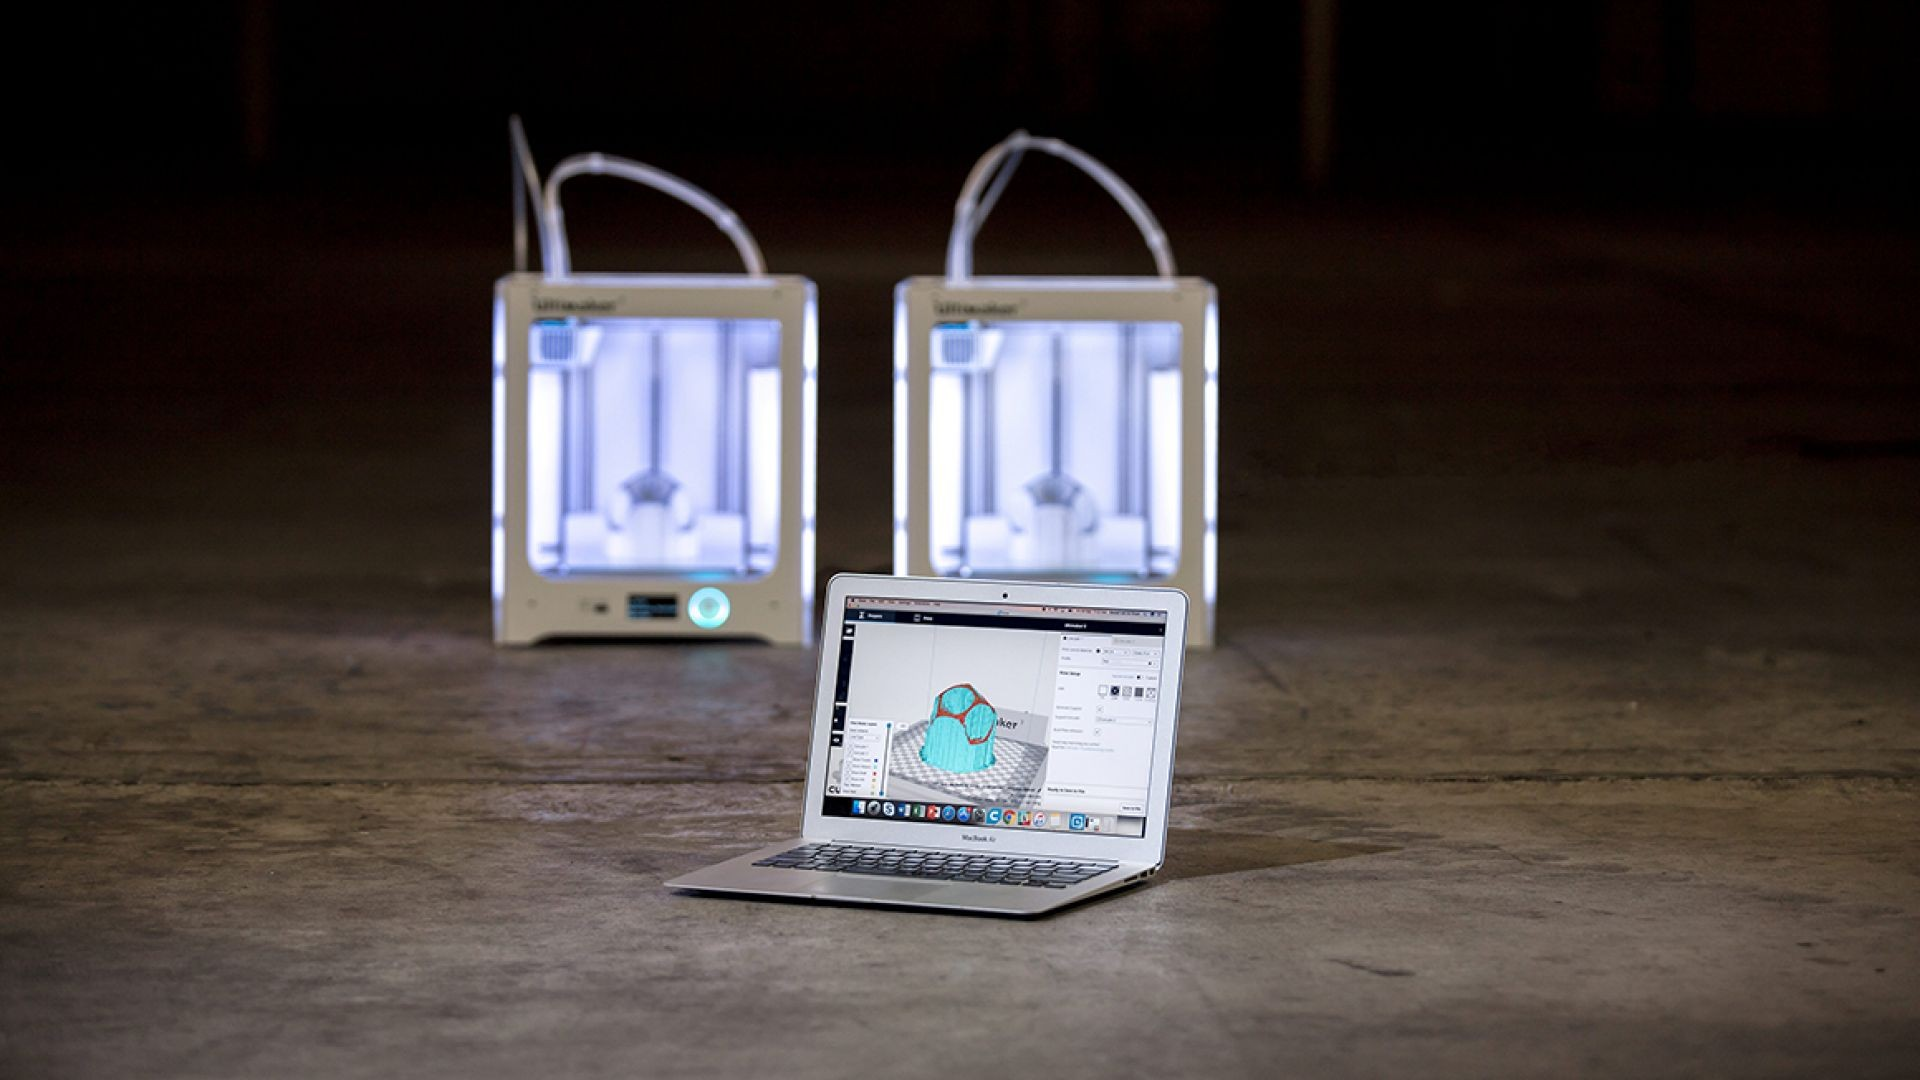 Ultimaker unveils software strategy to unlock greater 3D printing potential